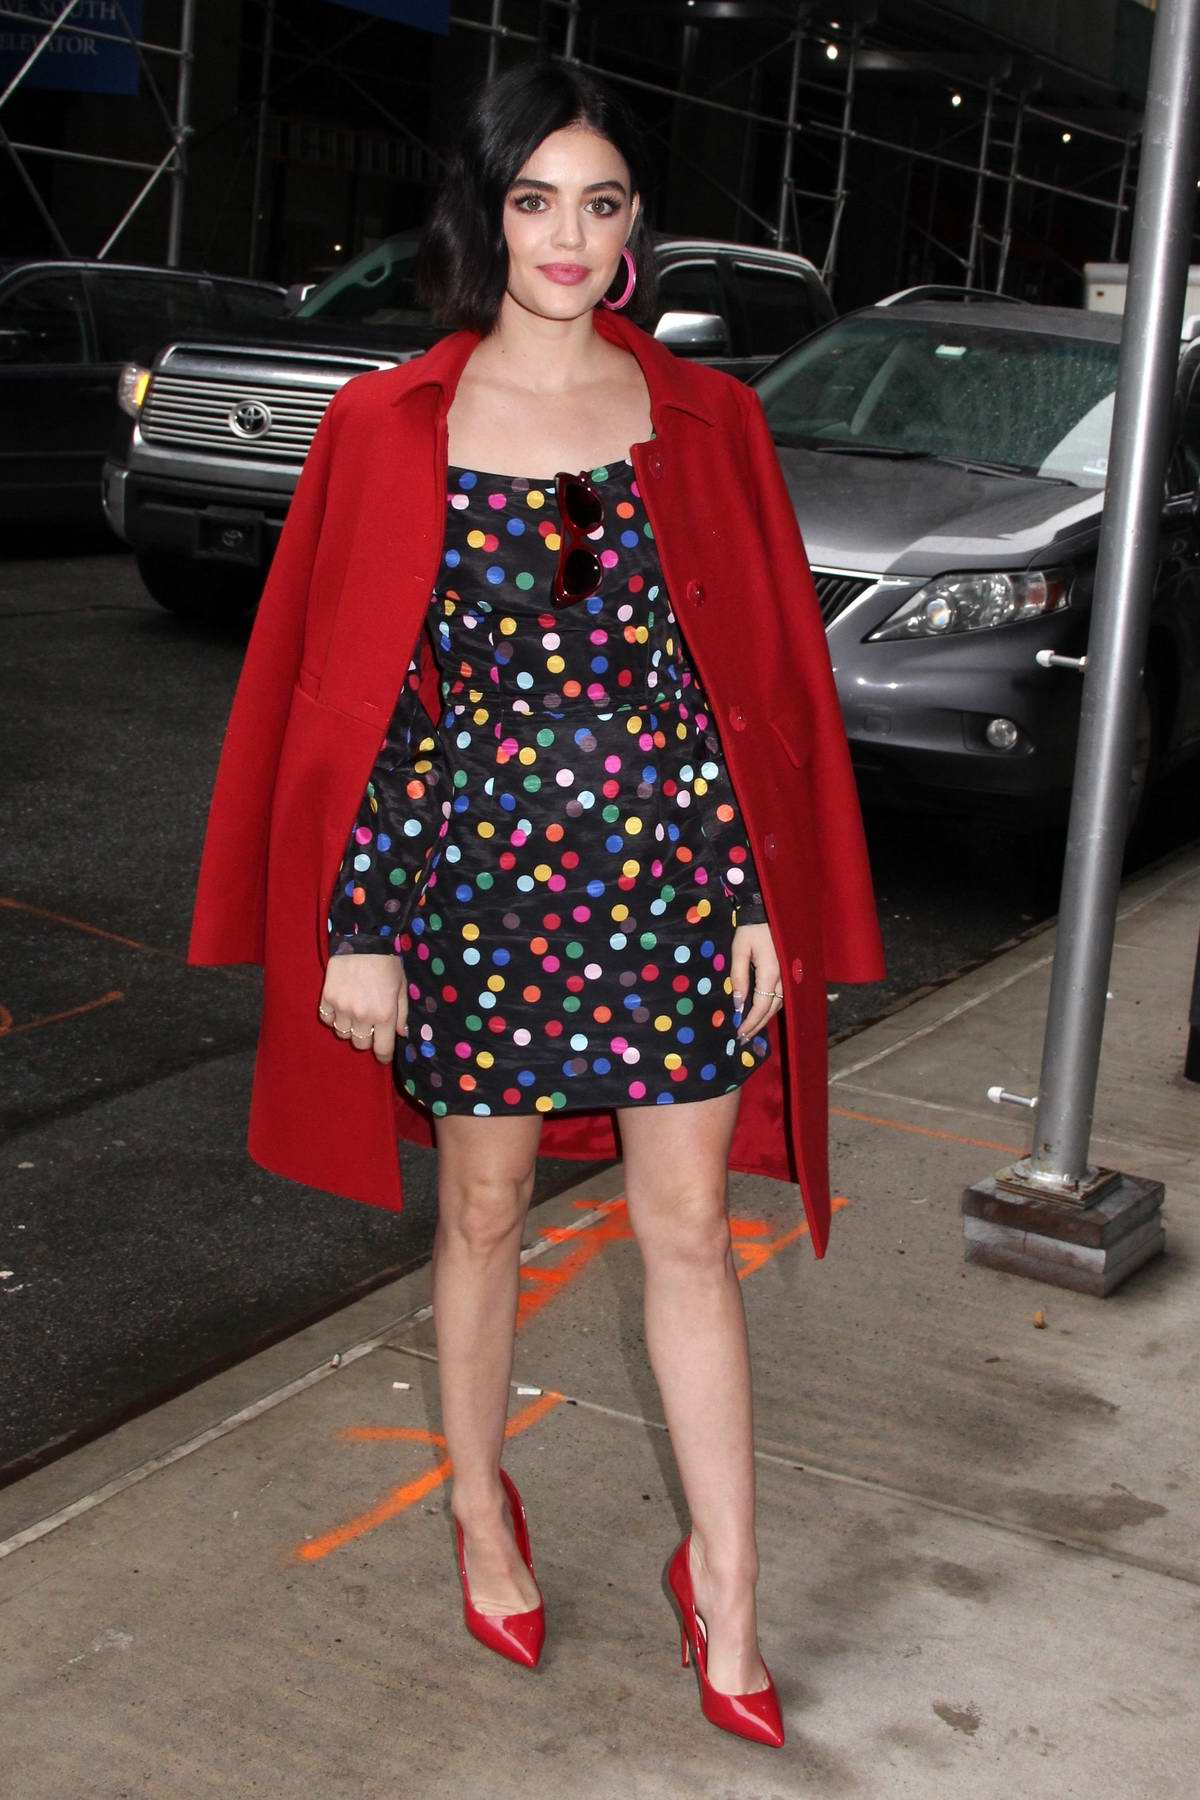 Lucy Hale looks pretty in a colorful polka dot dress while visiting Buzzfeed AM To DM in New York City